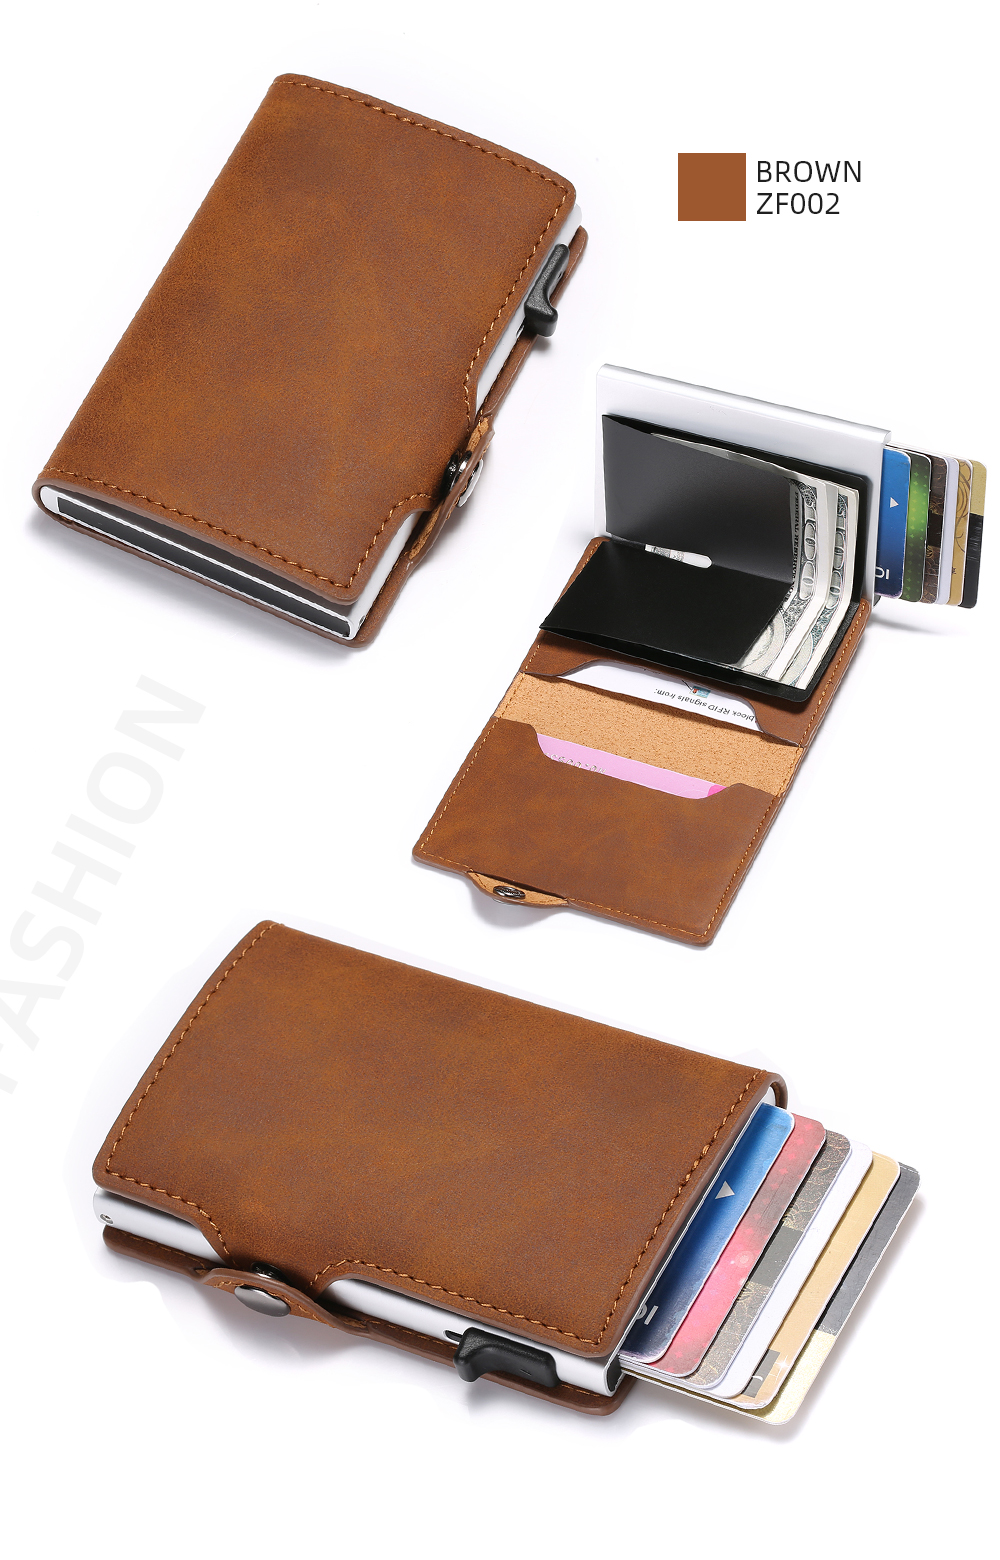 H98b6231bc7834872bc8b28d568947d69q - BISI GORO Single Box Card Holder PU Leather Card Wallet New Men RFID Blocking Aluminum Smart Multifunction Slim Wallet Card Case